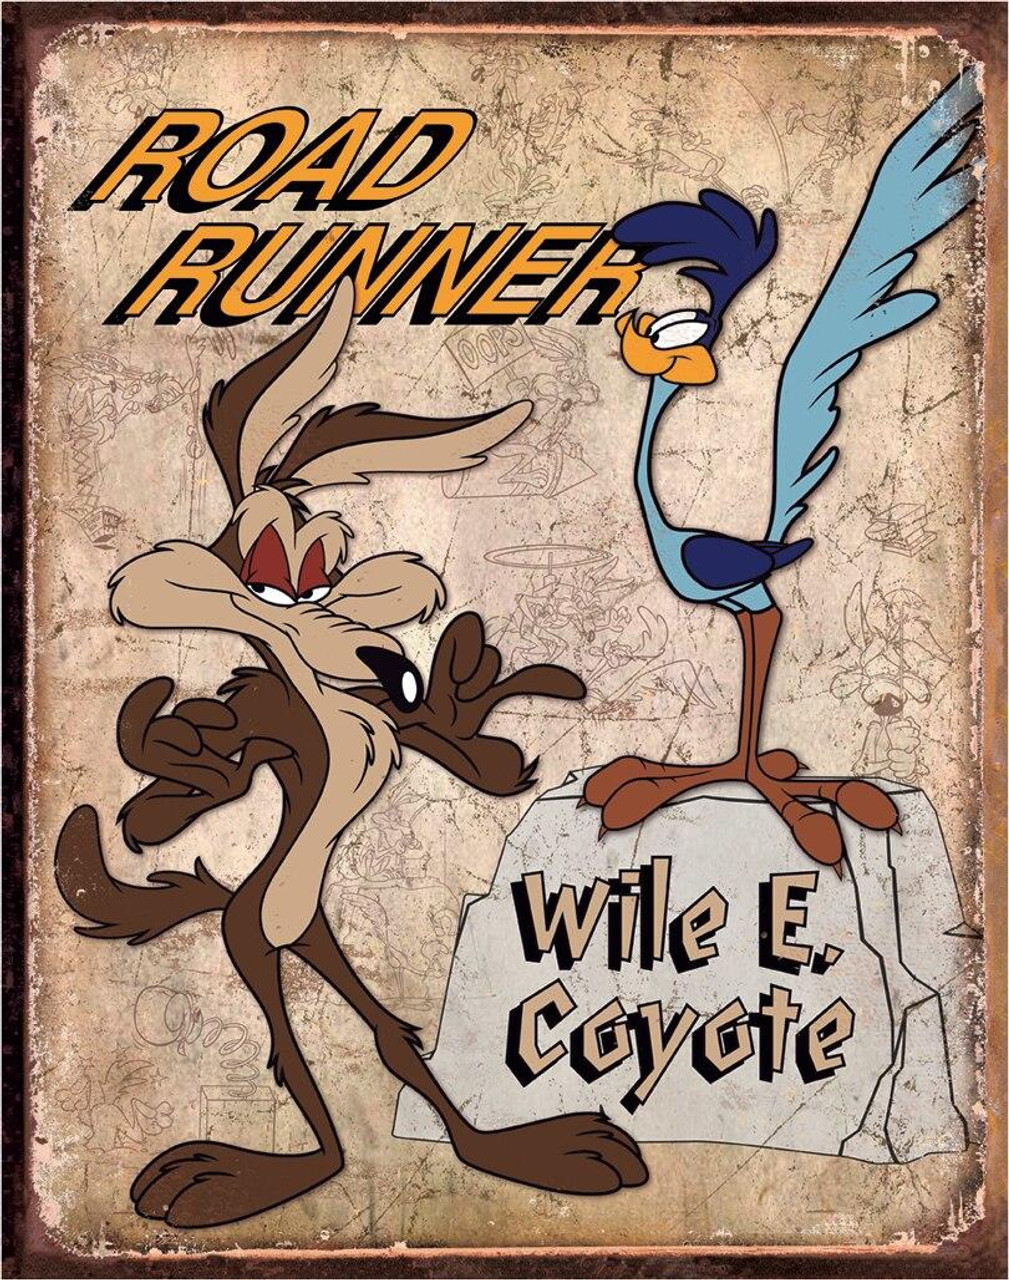 Warner Brothers Road Runner and Wyle E Coyote